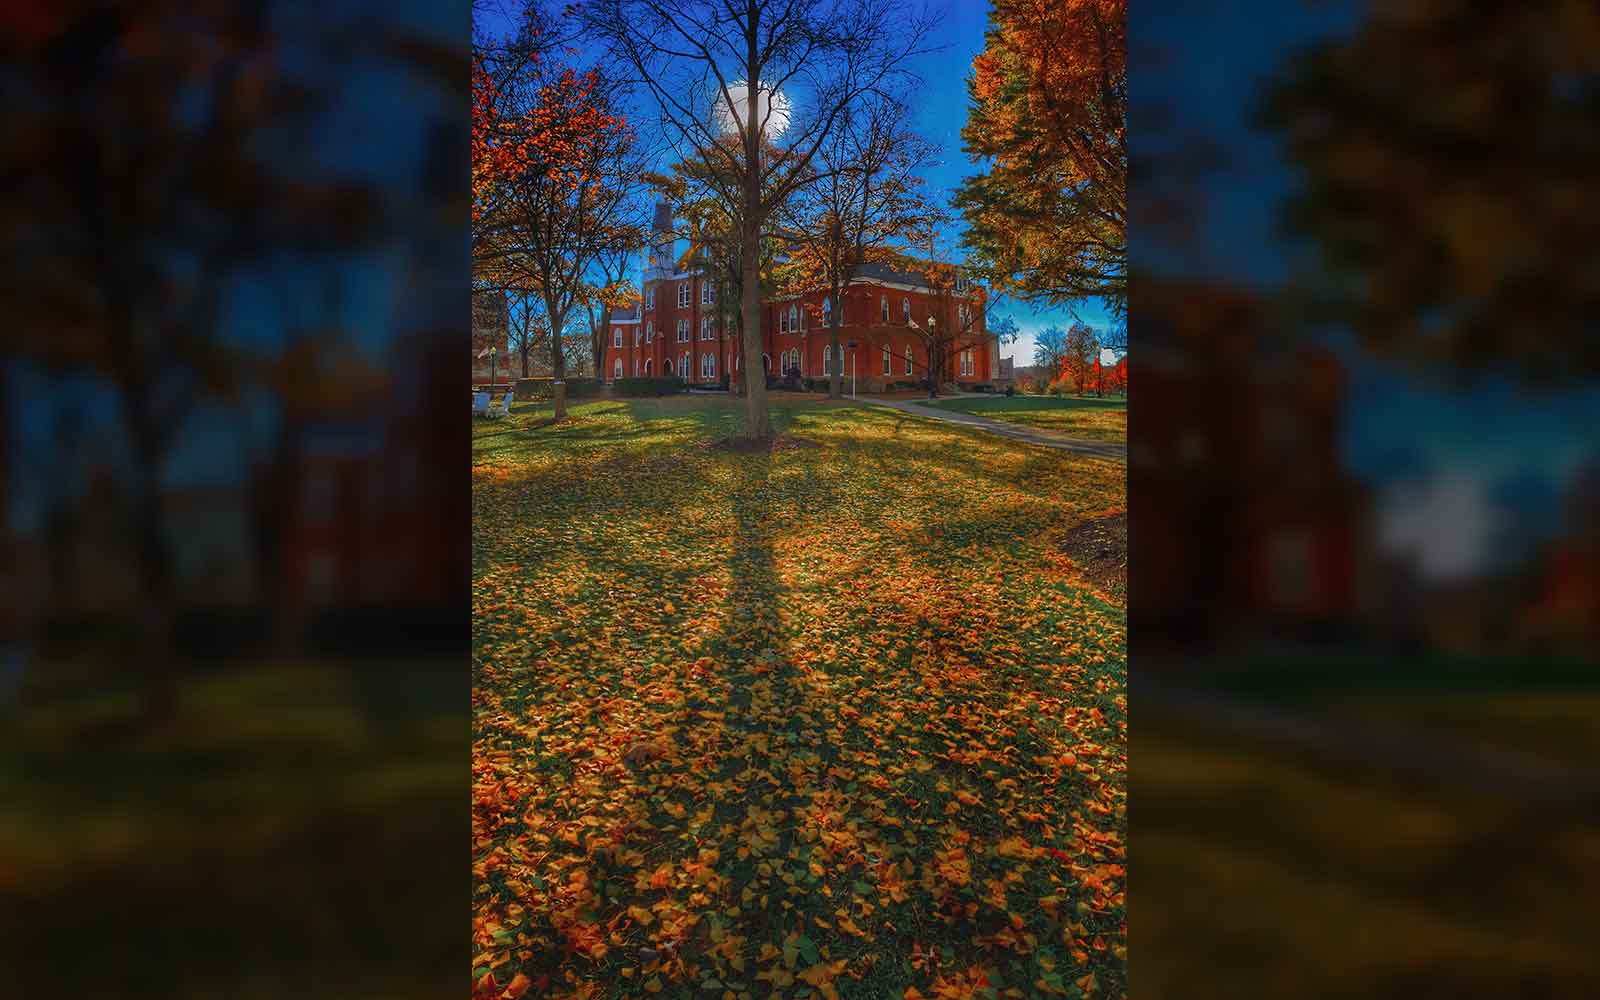 Afternoon sun brightens leaves fallen on the lawn at Towers Hall on the Otterbein University campus. My Final Photo for Nov. 13, 2015.